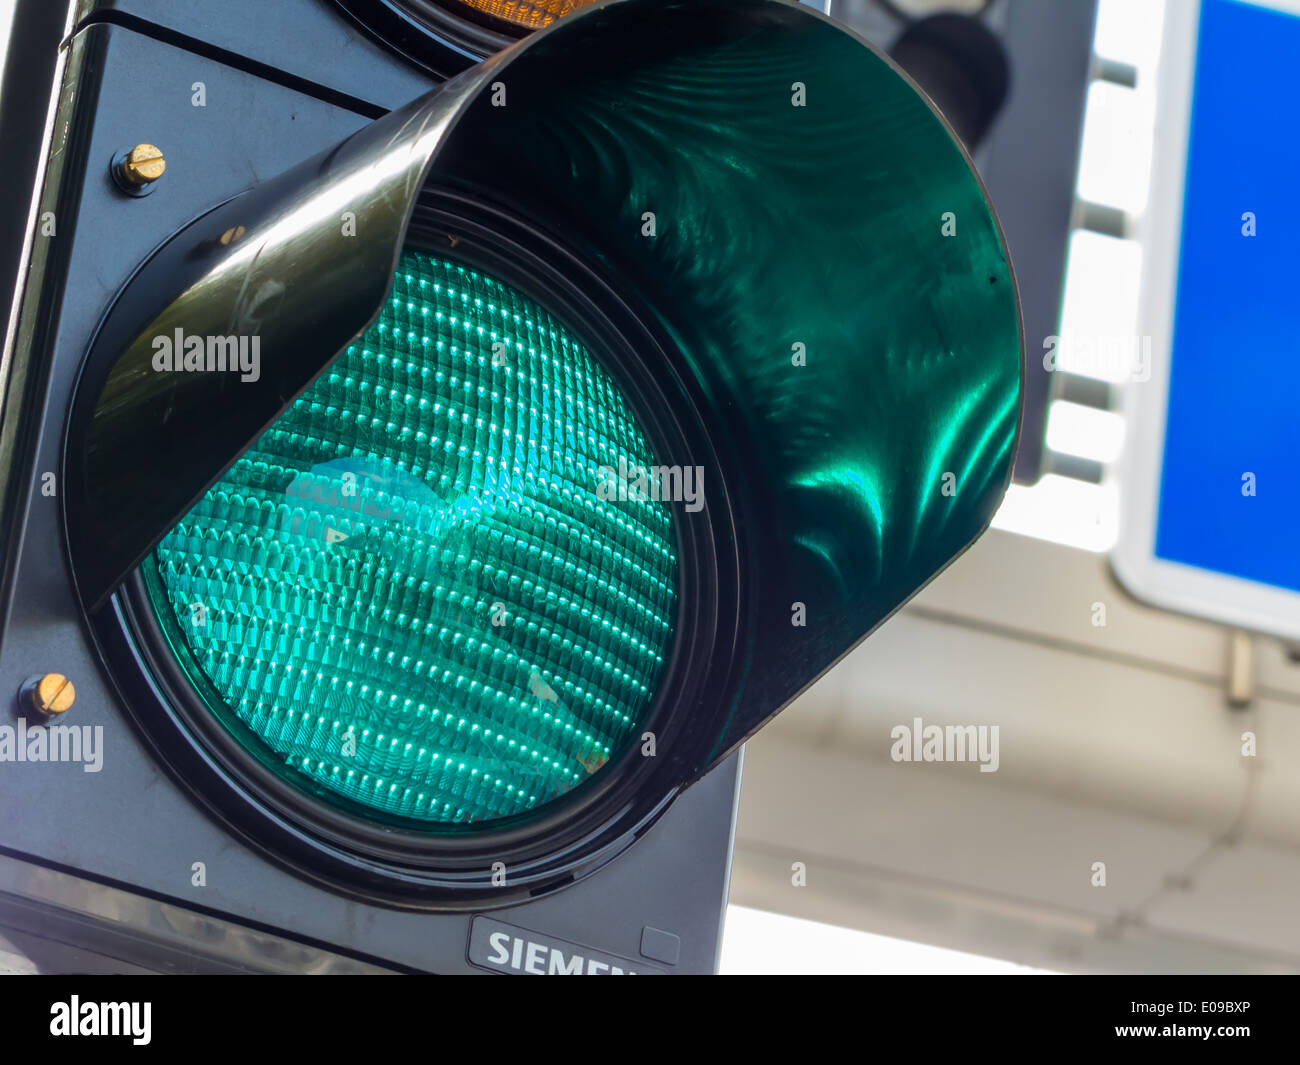 Your traffic light shines the green light. - Stock Image